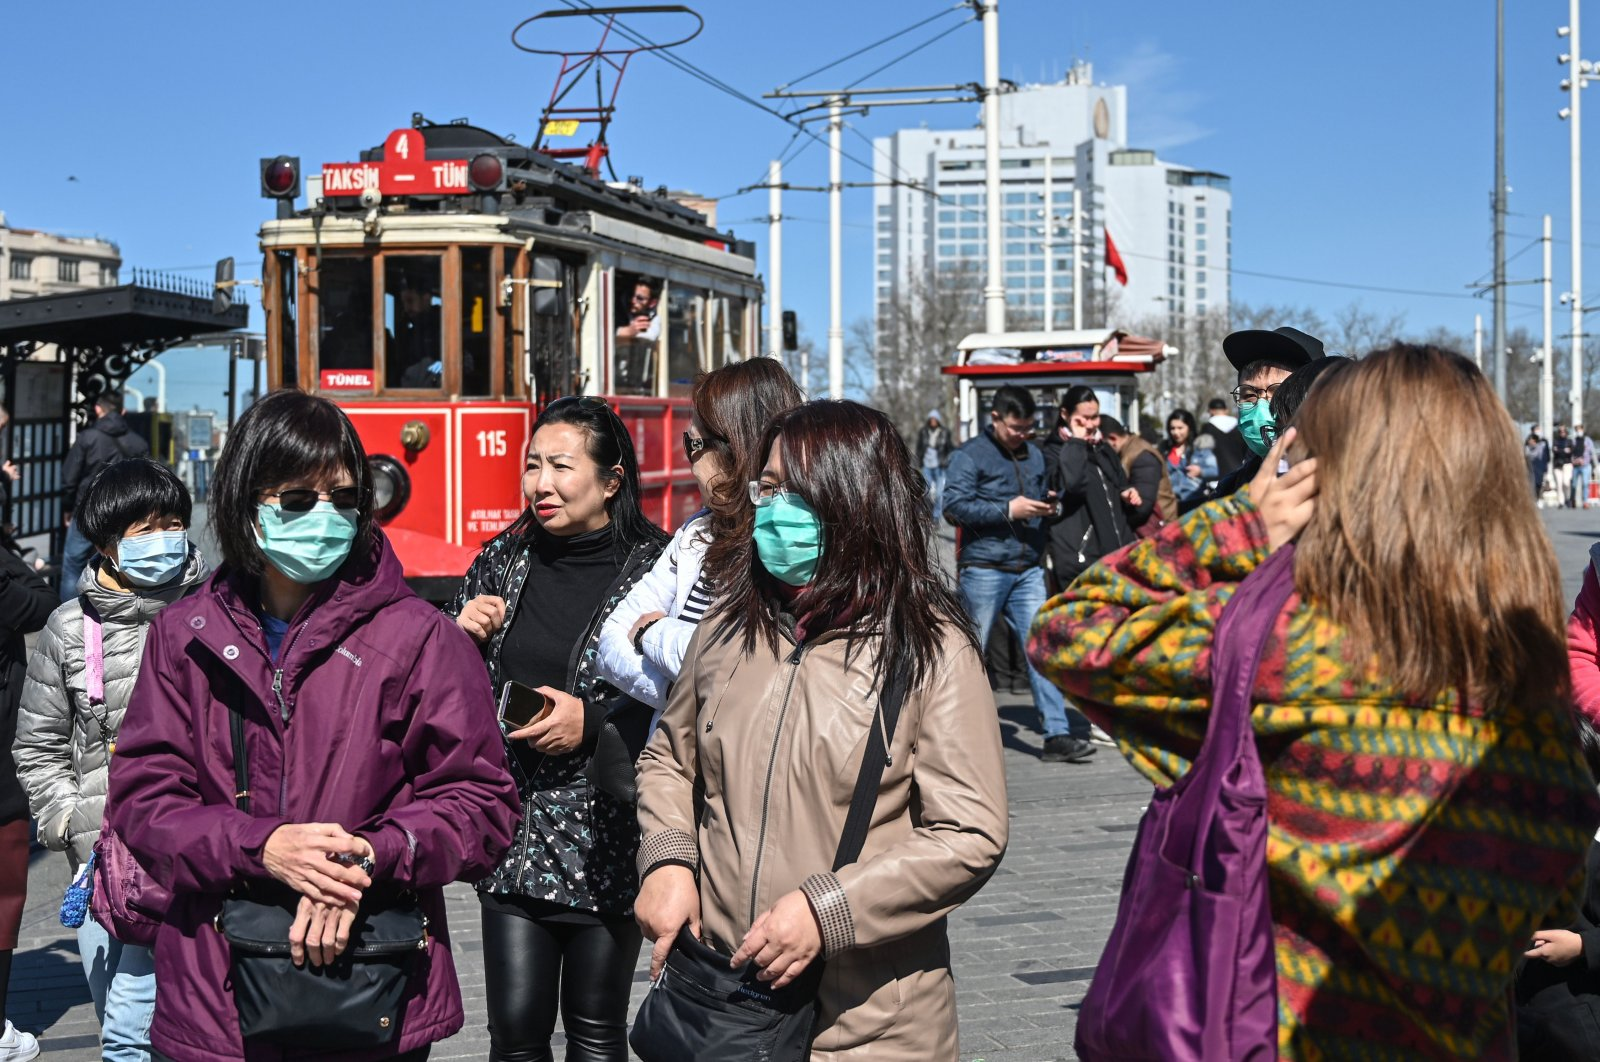 Tourists wear protective face masks as they walk at Taksim Square as the nation tries to limit the spread of the new coronavirus, in Istanbul, Tuesday, March 17, 2020. (AFP Photo)